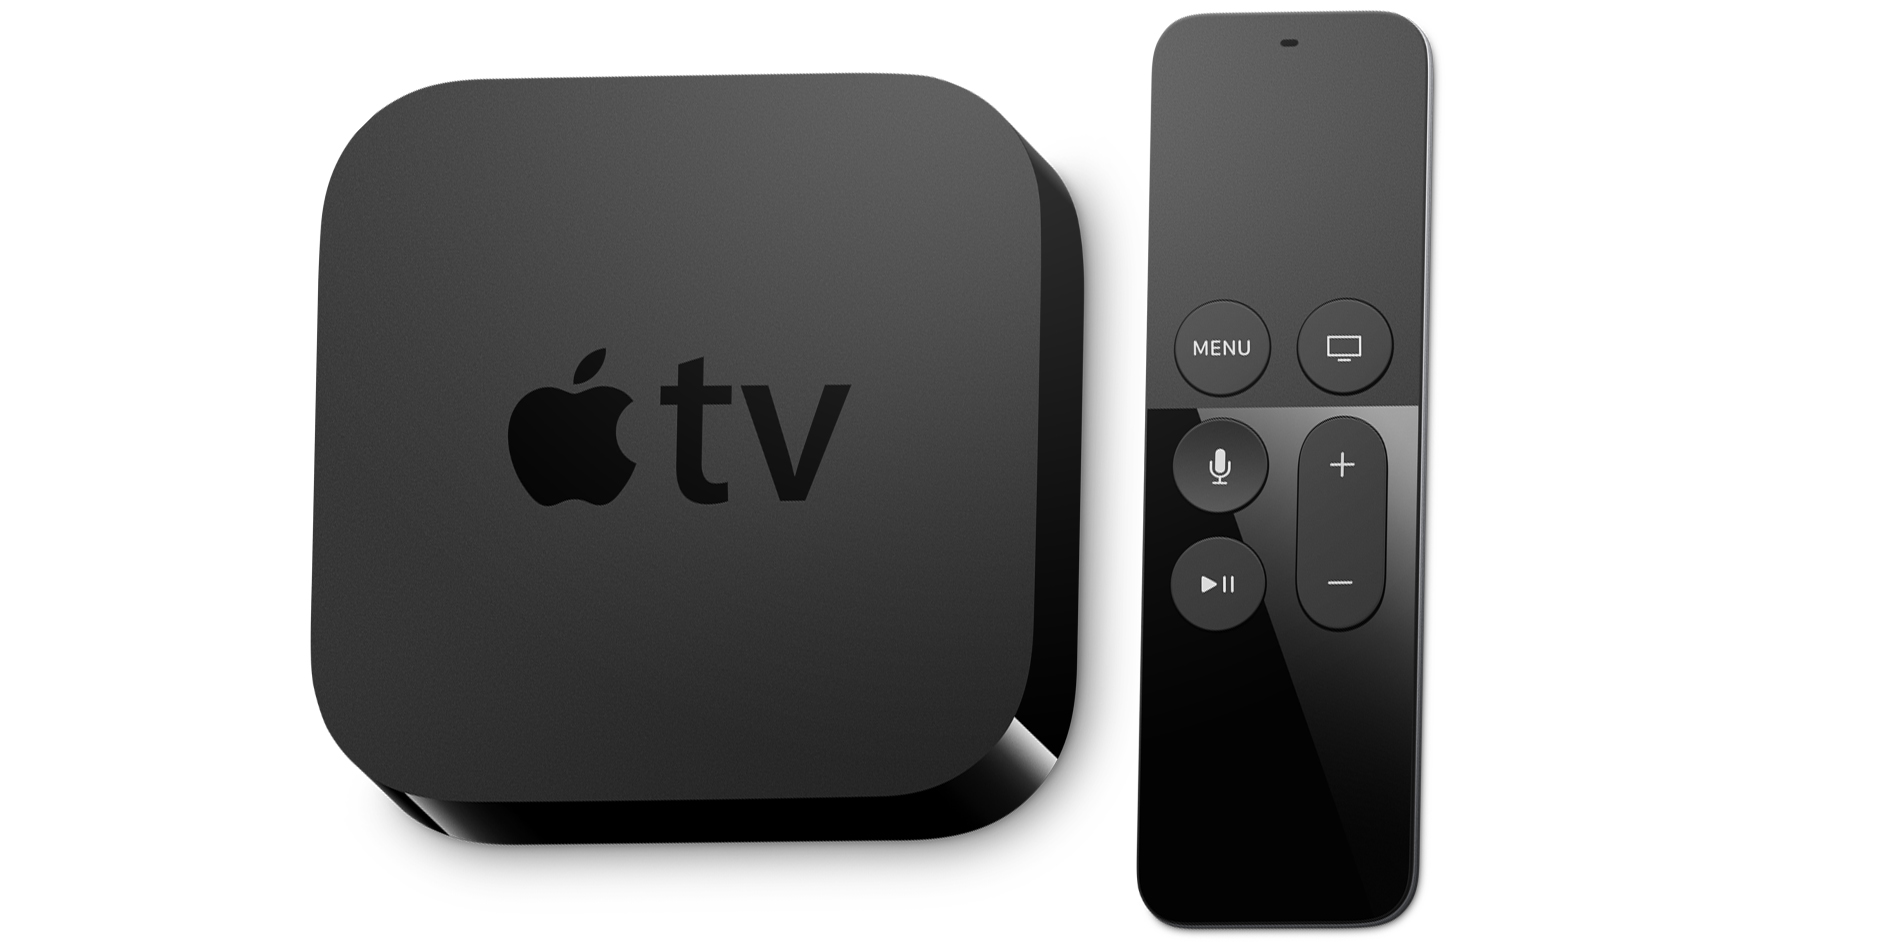 Tv 9to5toys in todays daily deals we have from best buy the geek squad certified refurbished 4th gen apple tv 32gb w siri remote for 12499 shipped fandeluxe Choice Image